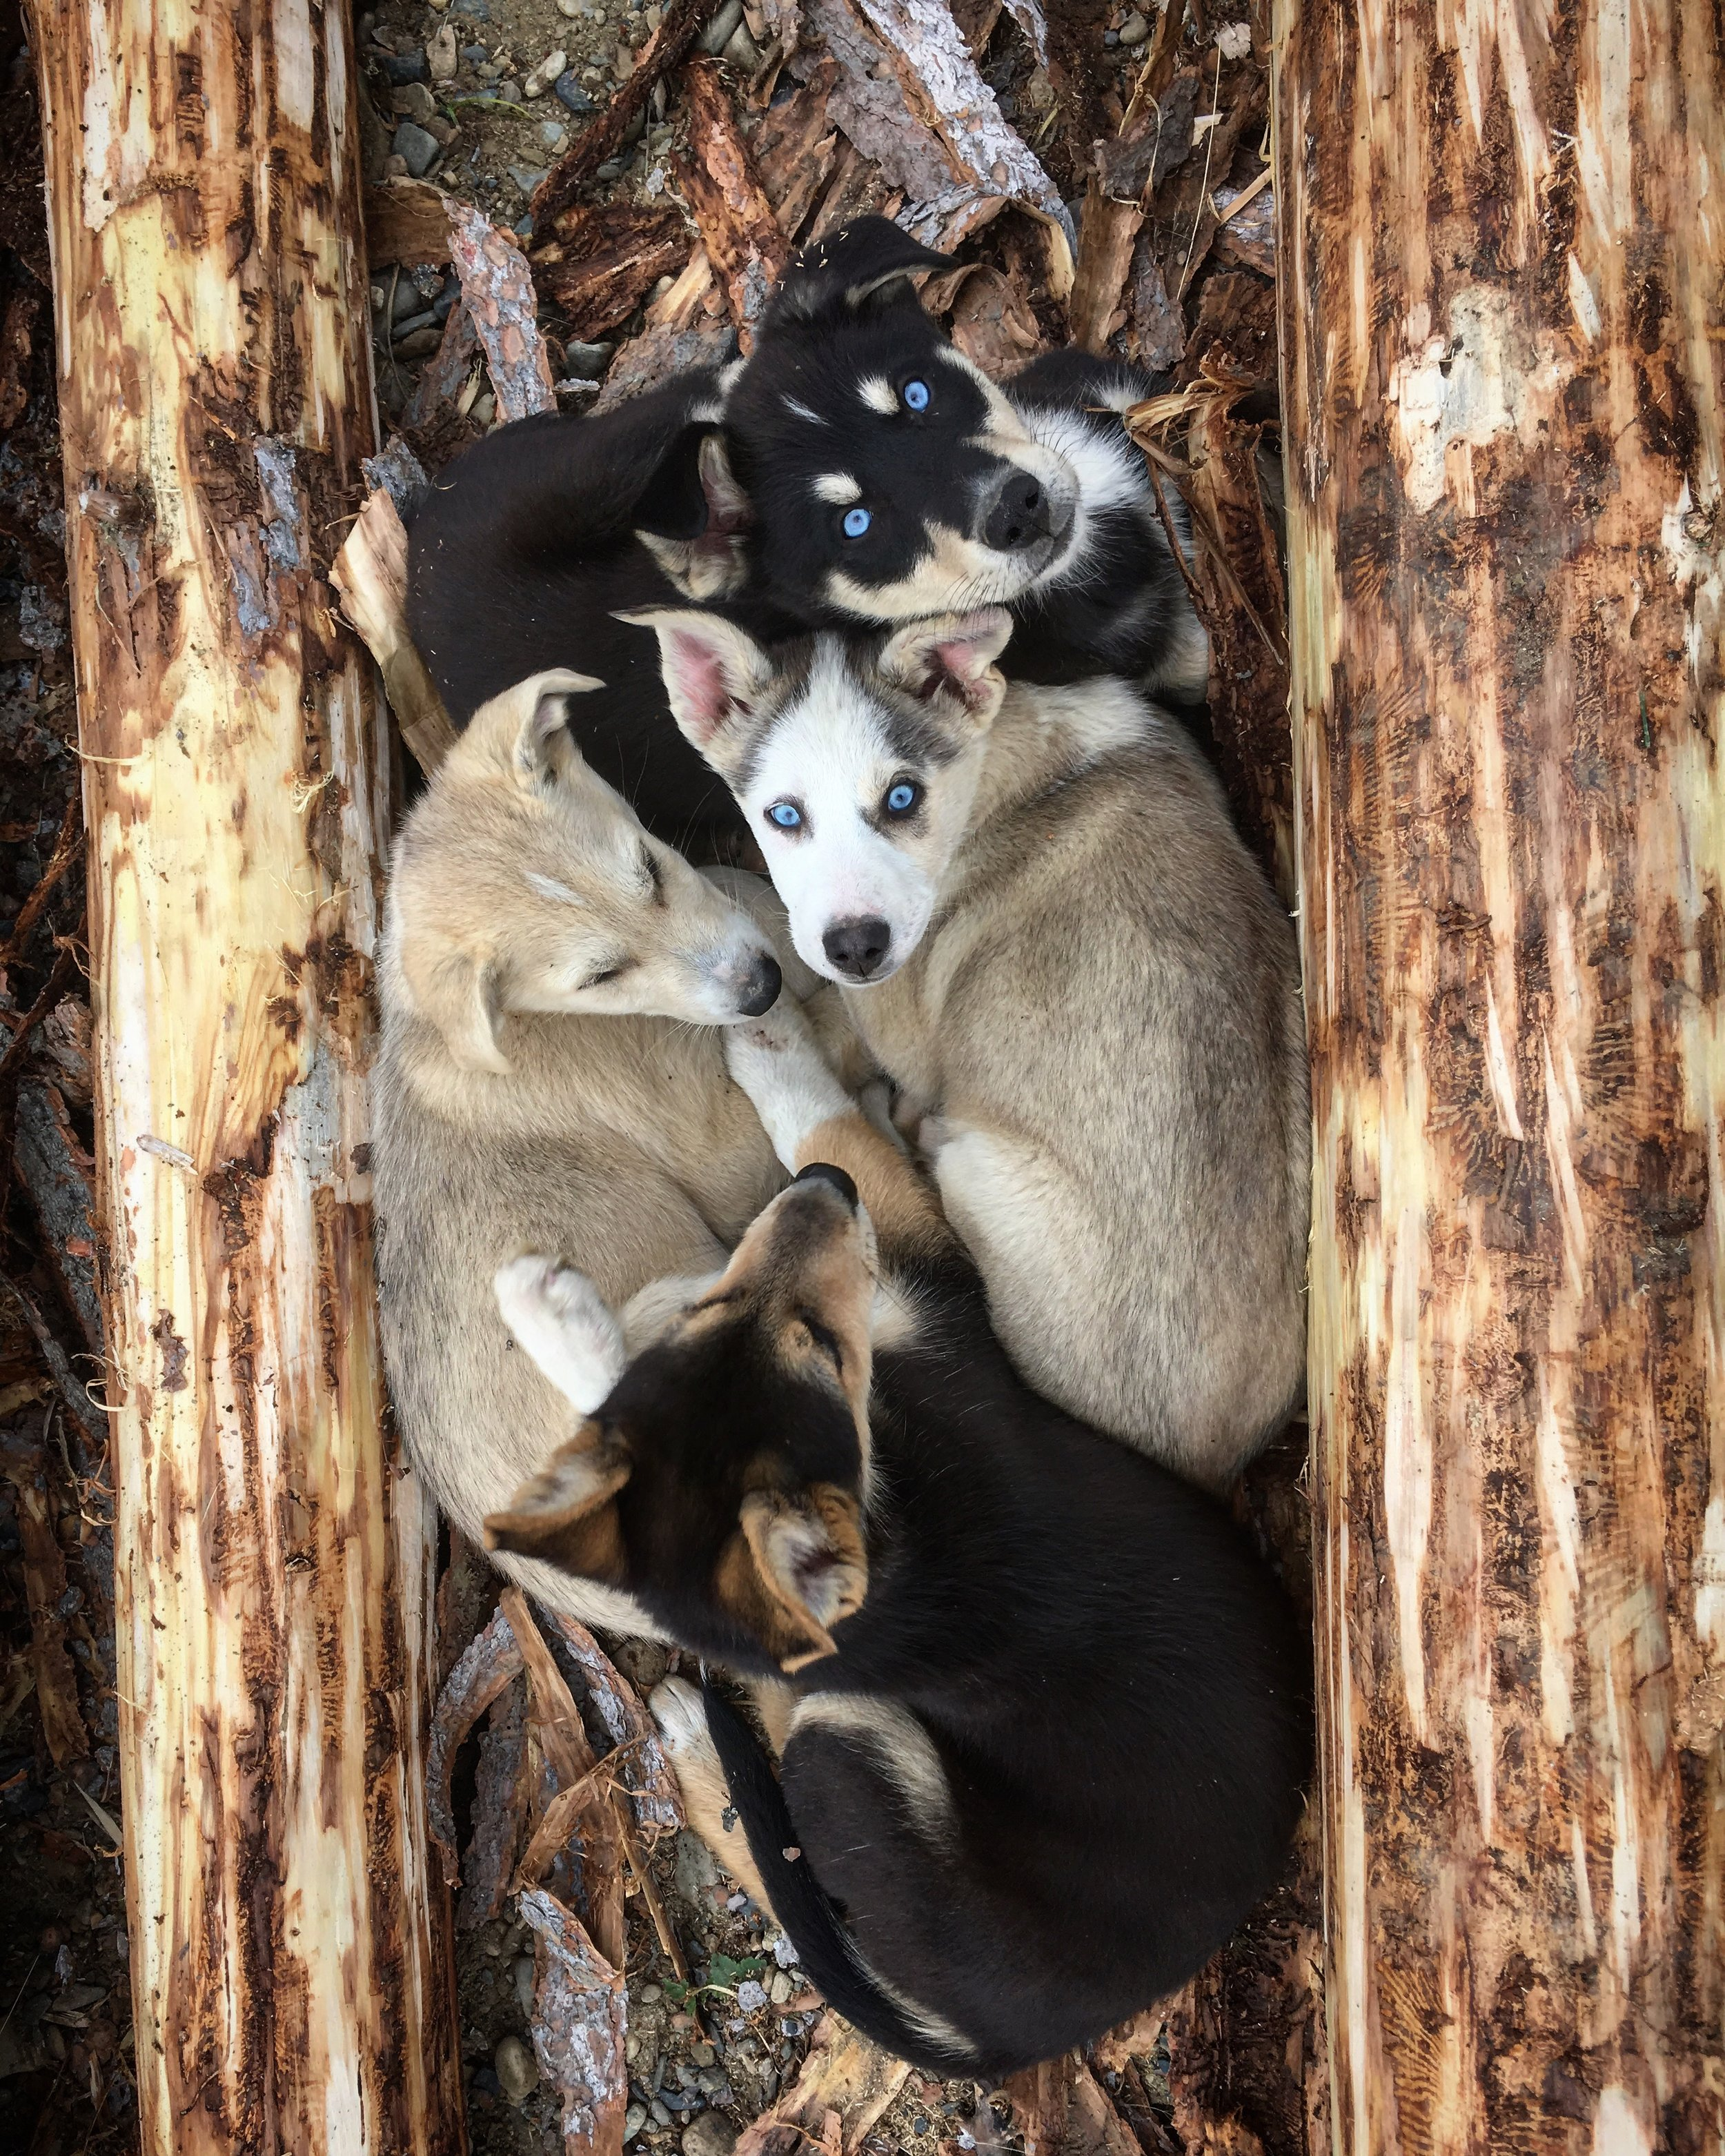 I'm babysitting these pups for friend Riley Dyche from Darkhorse Racing Kennel